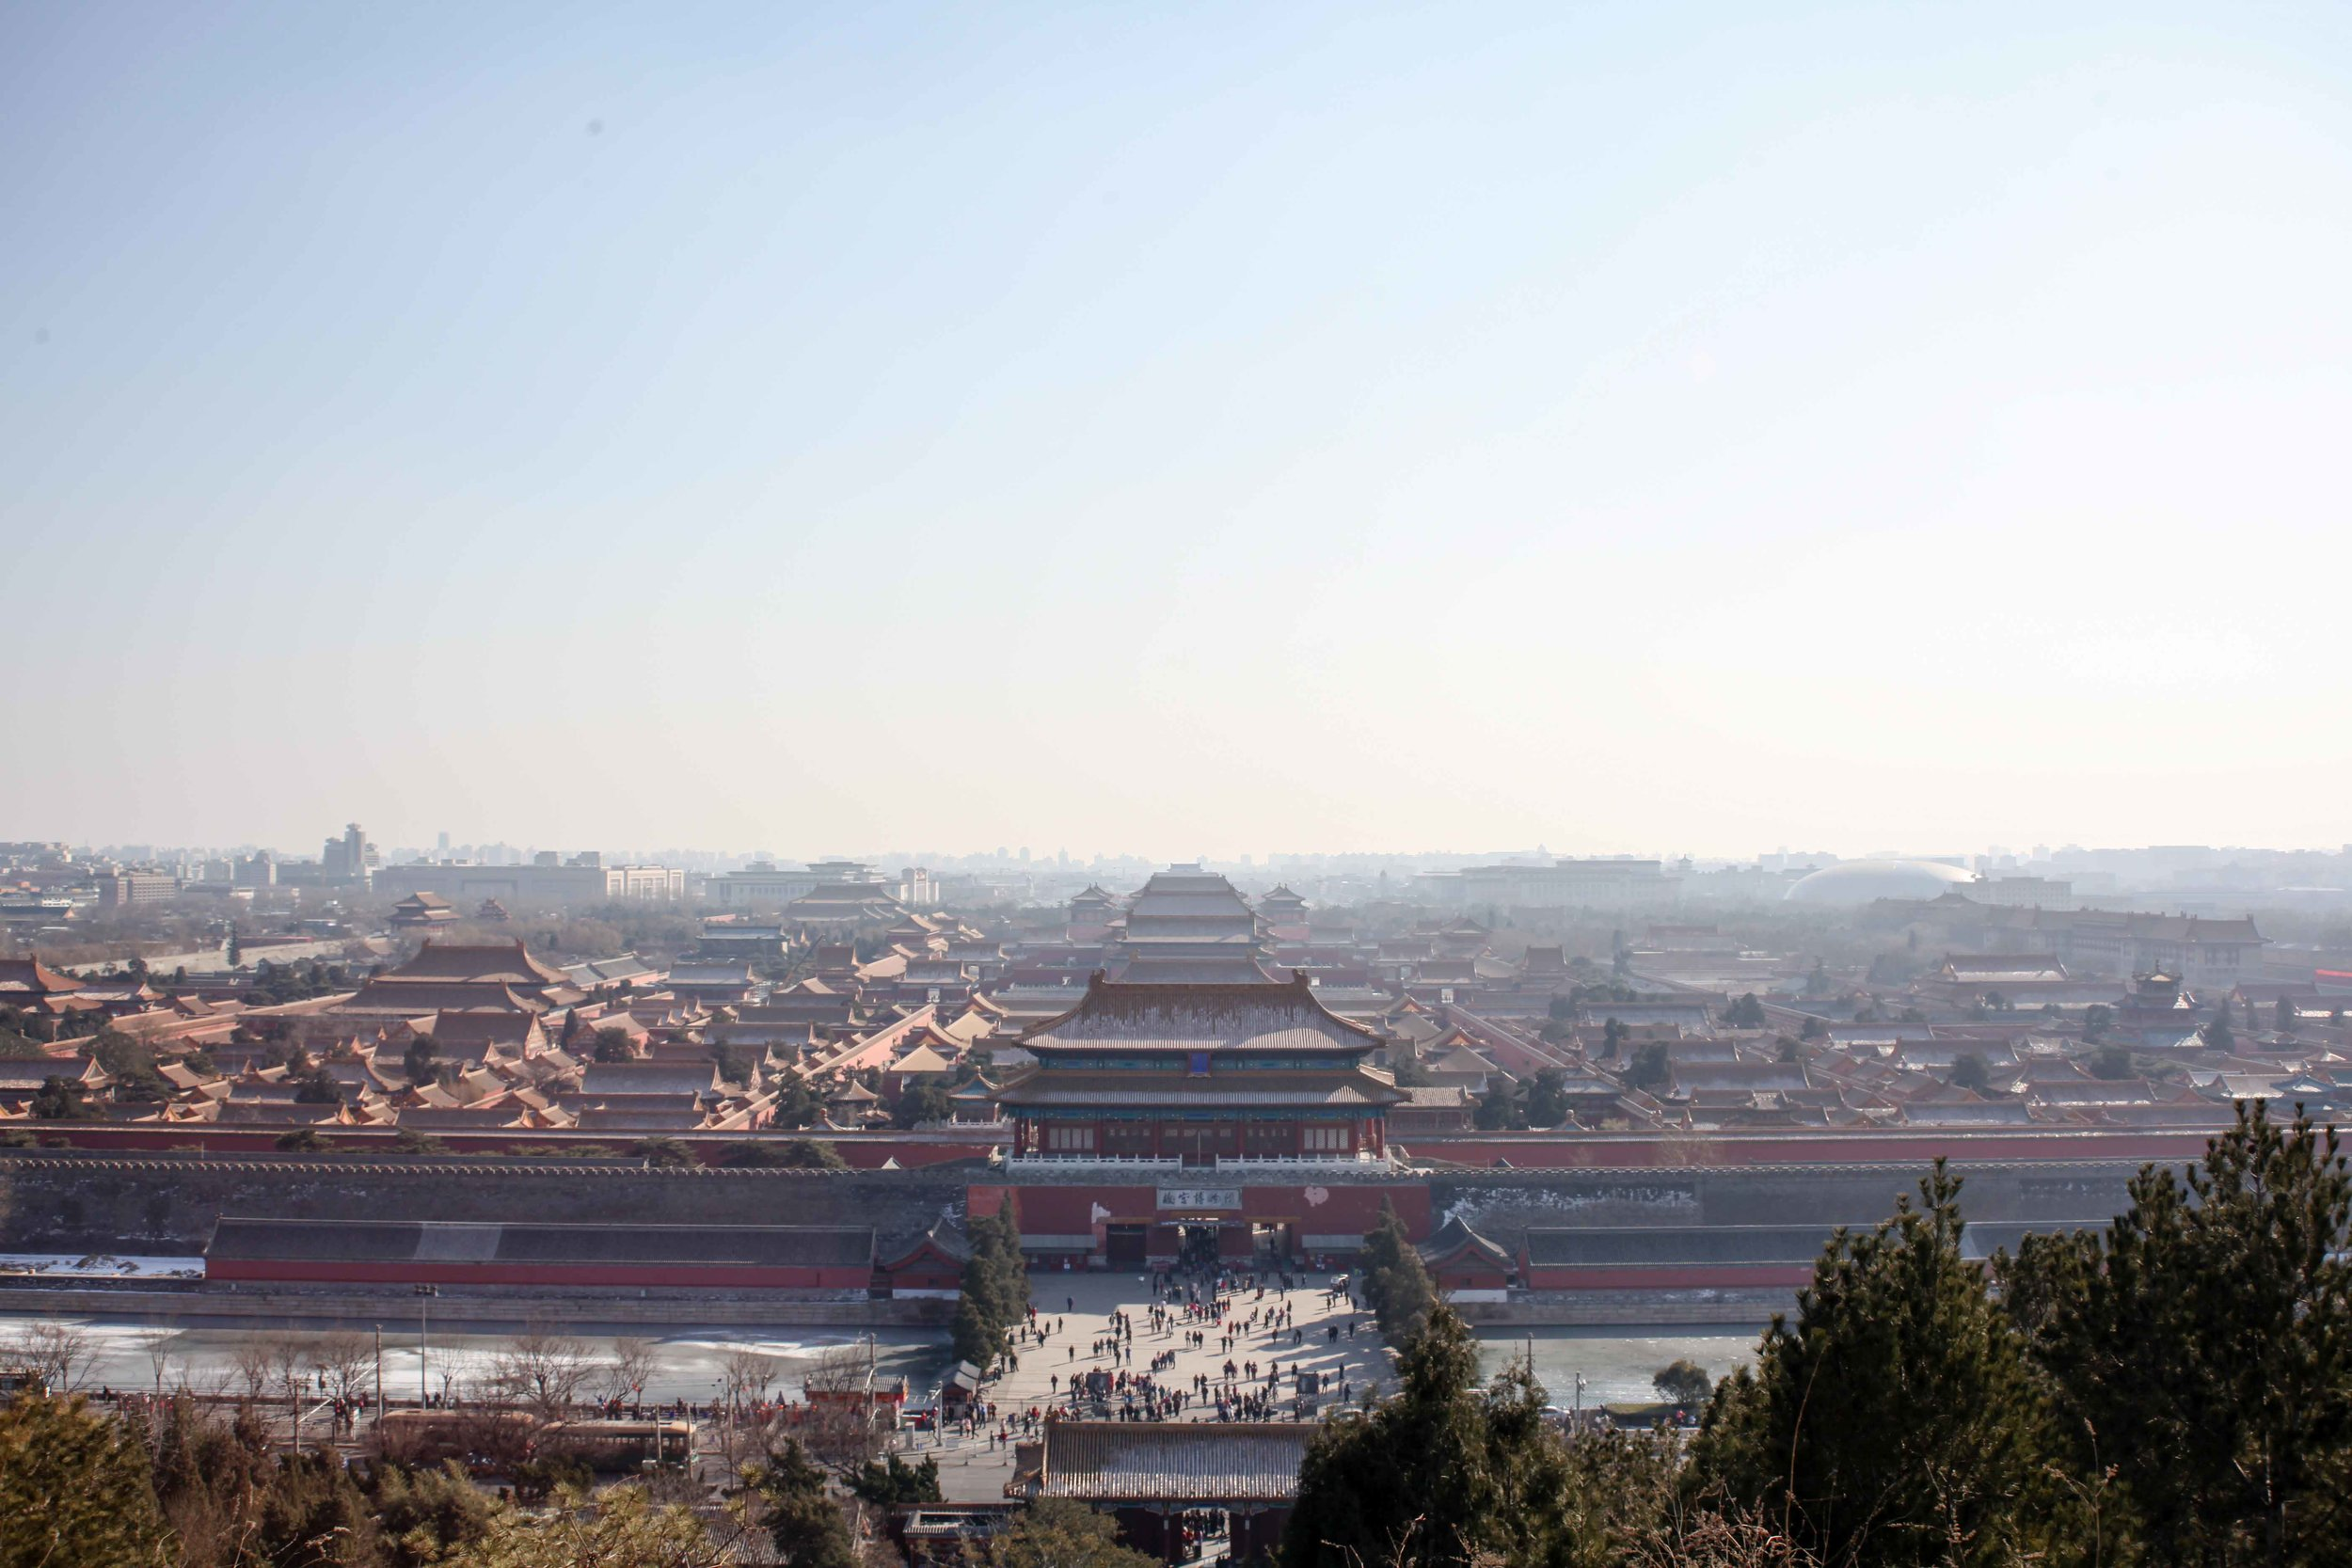 View of The Forbidden City from Jingshan Hill.